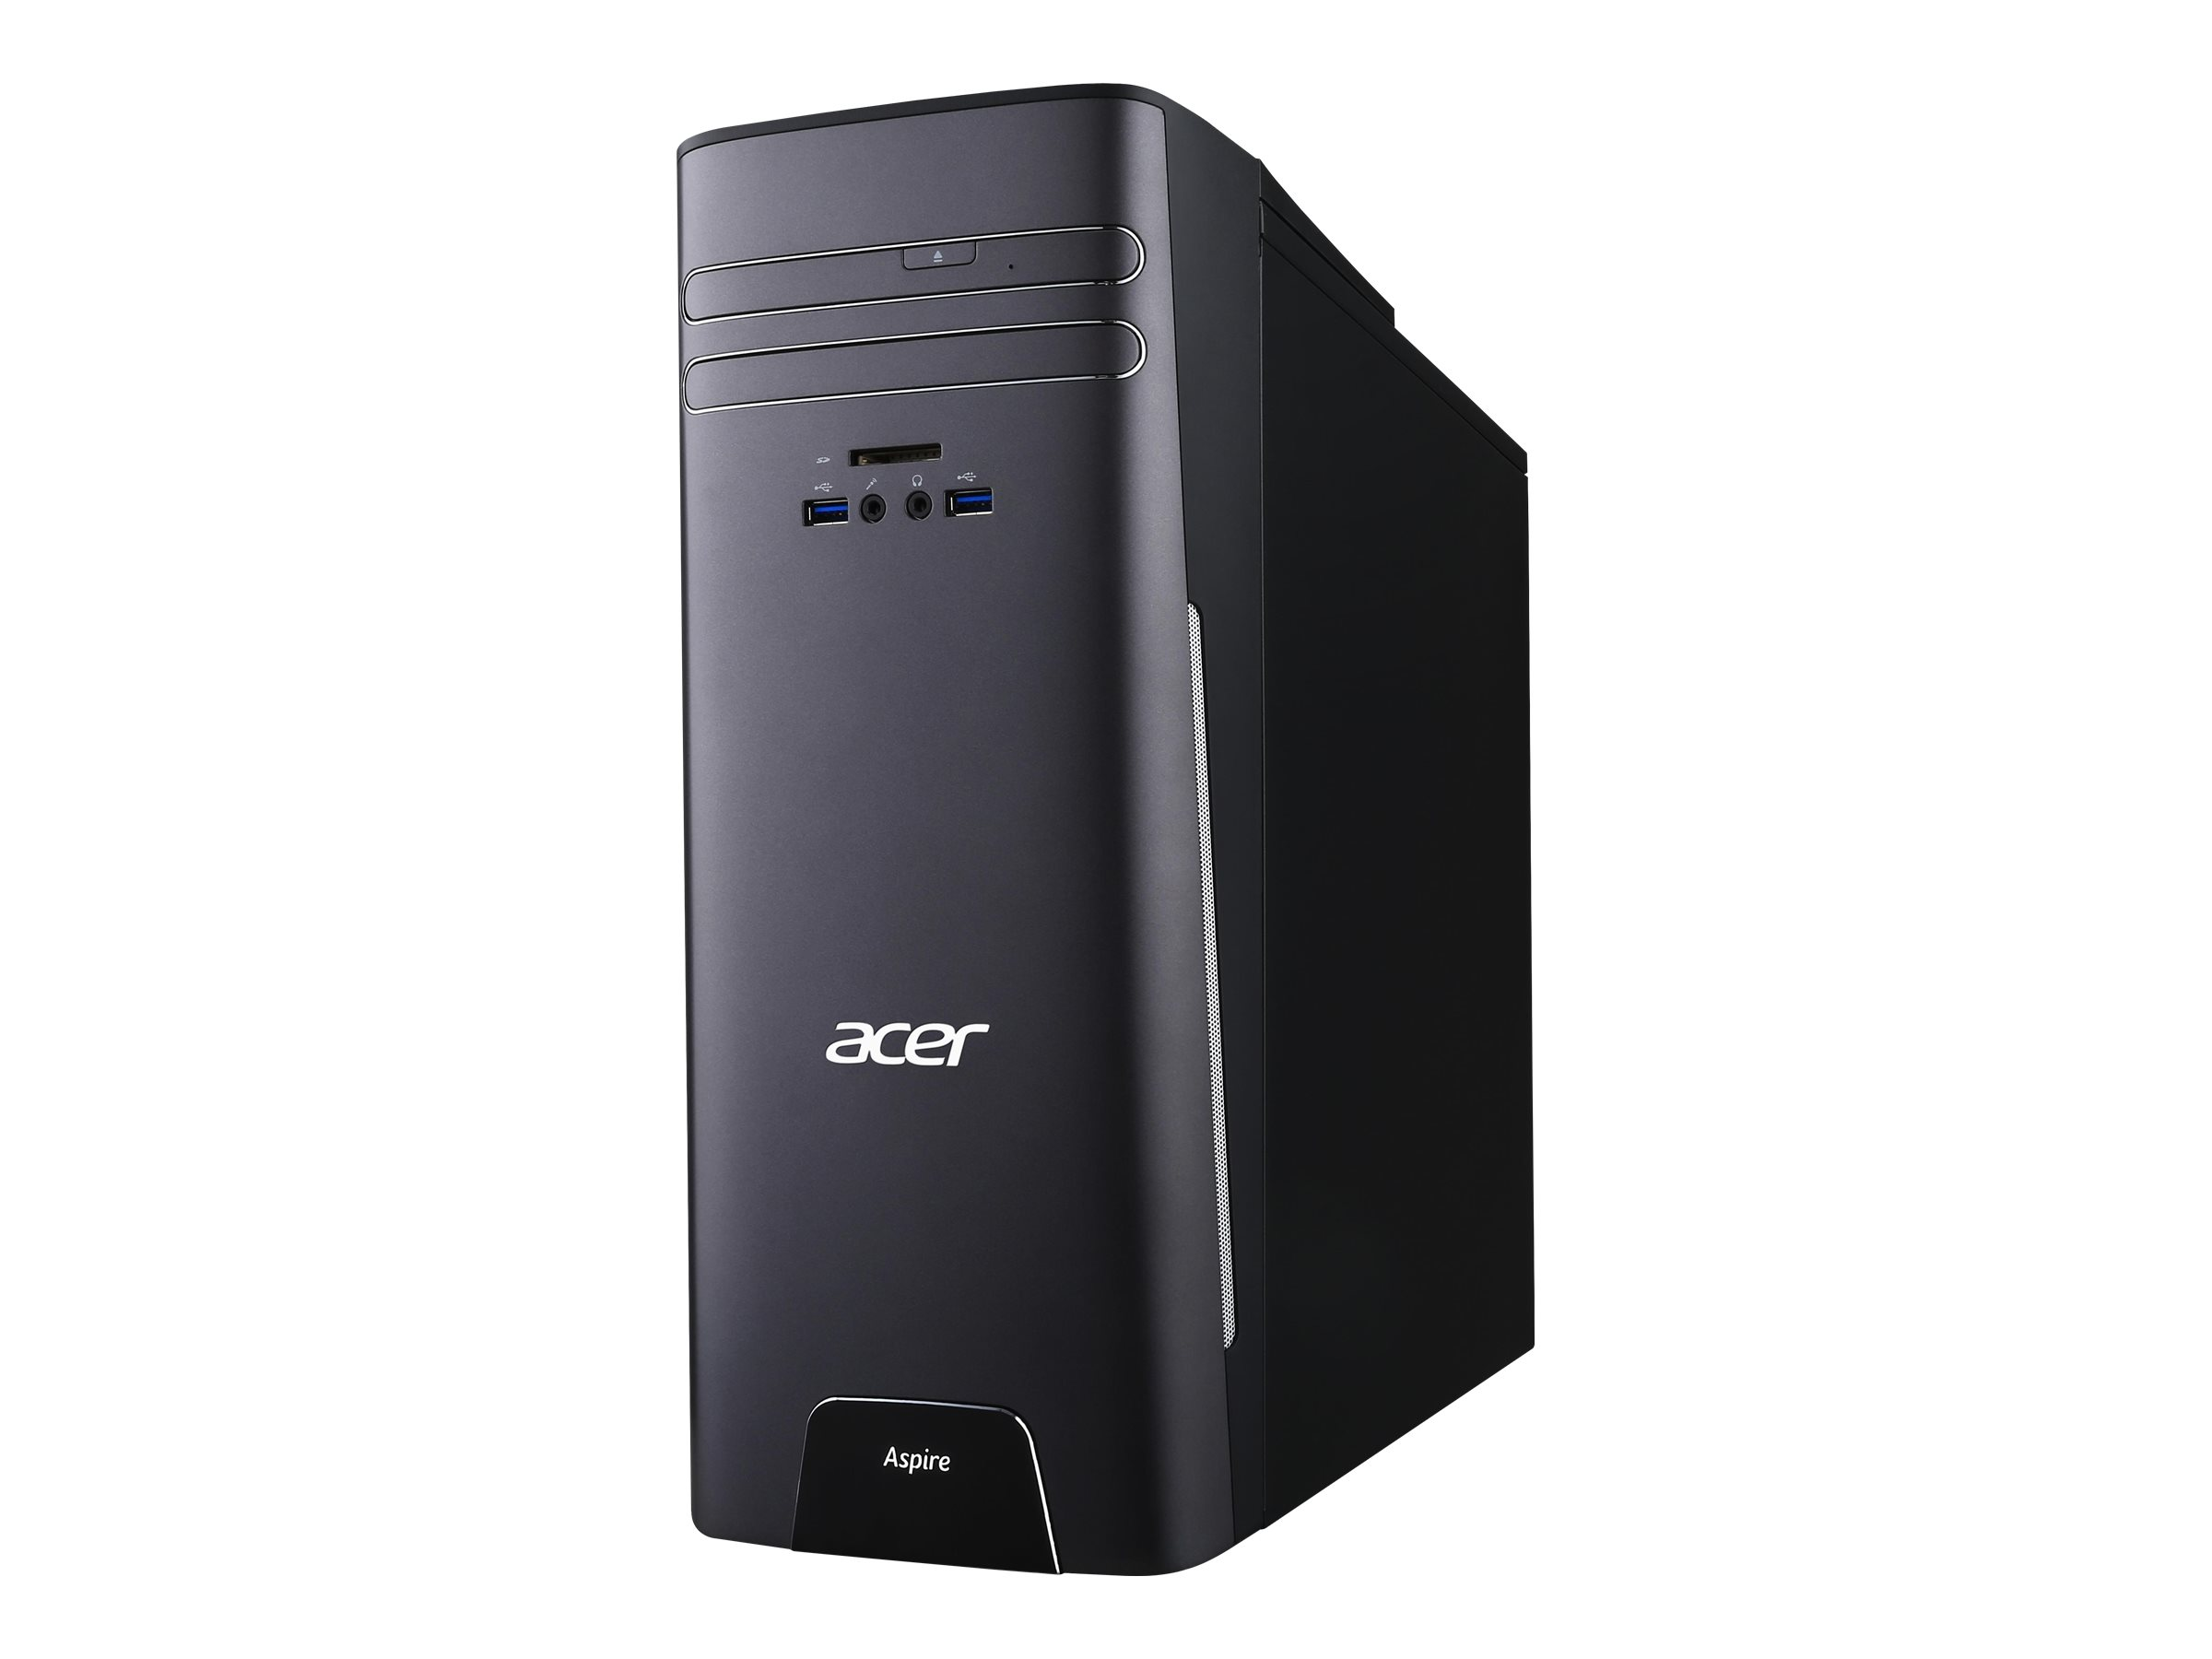 ACER EXTENSA 6700 AUDIO WINDOWS DRIVER